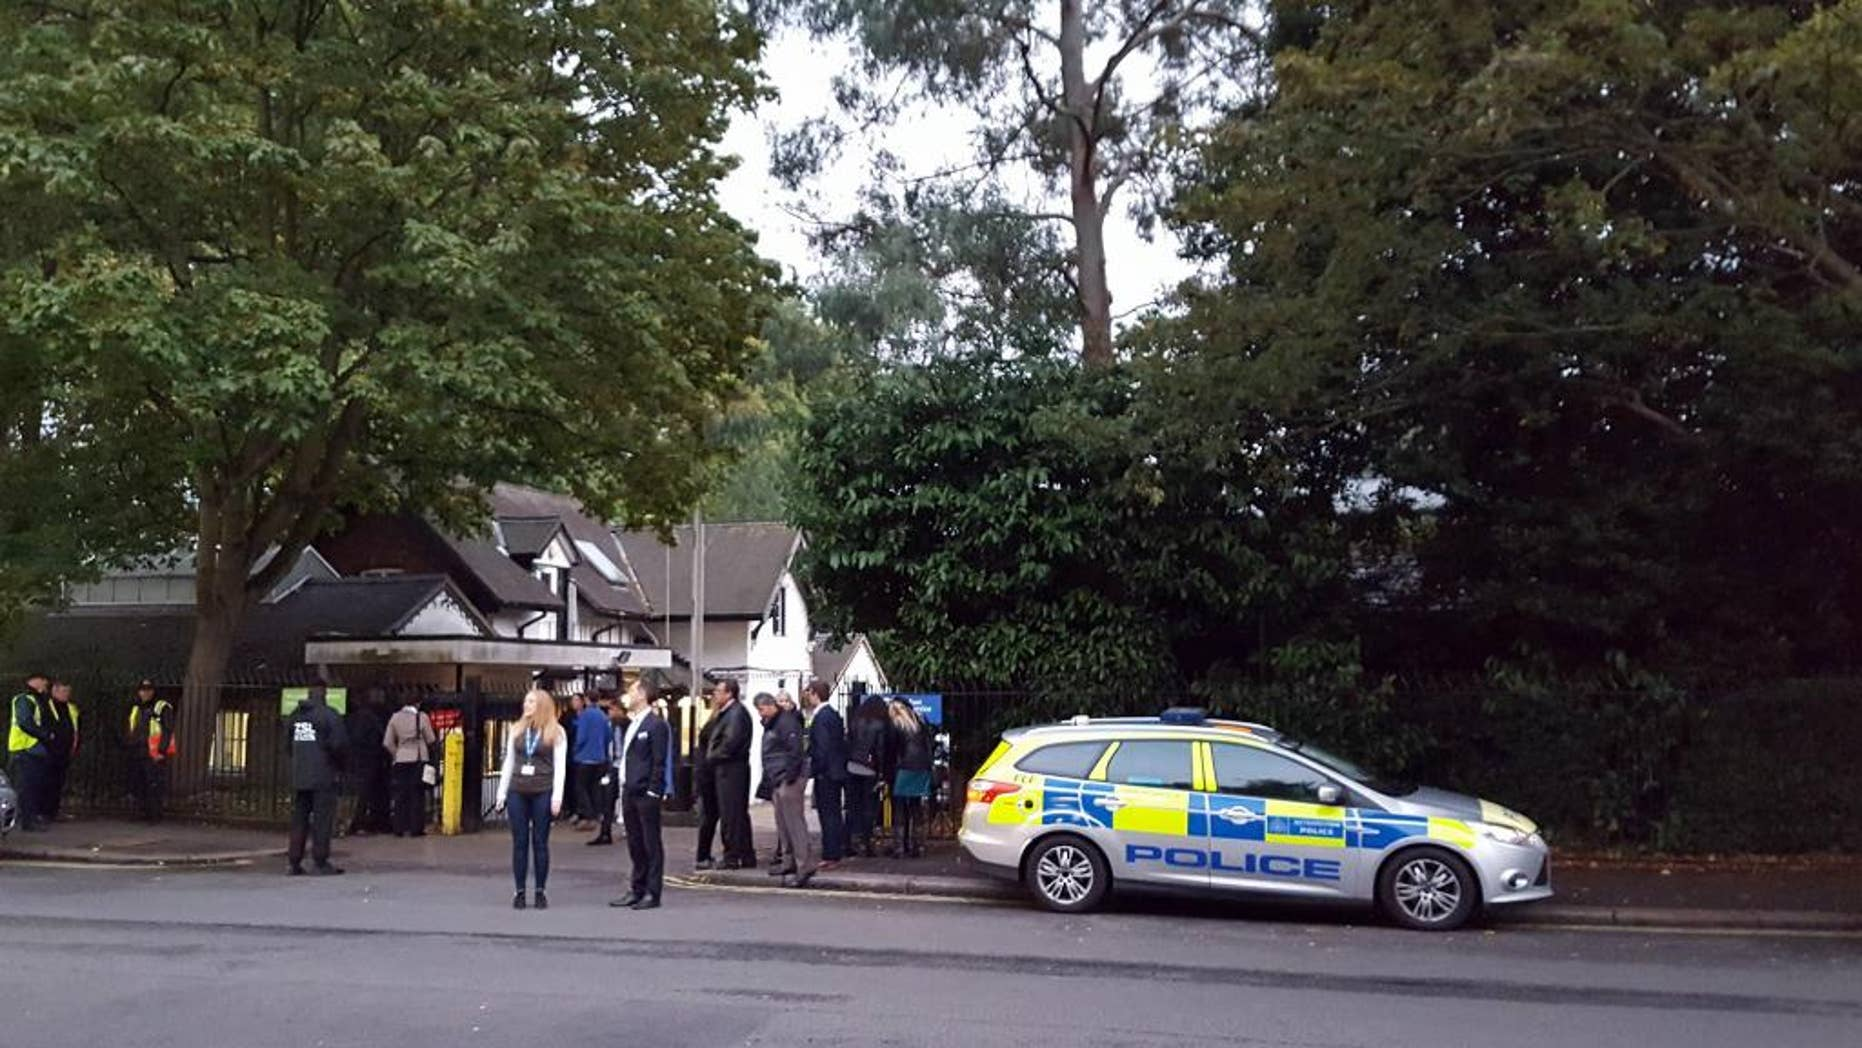 Police and evacuated visitors stand outside London Zoo after a gorilla escaped in London, Thursday, Oct. 13, 2016. London police say an incident involving a gorilla that escaped from its enclosure at the London Zoon has been concluded. There are reports the animal was subdued Thursday with a tranquilizer gun and recaptured. There were no initial reports of injuries. (Lynne Chapman via AP)